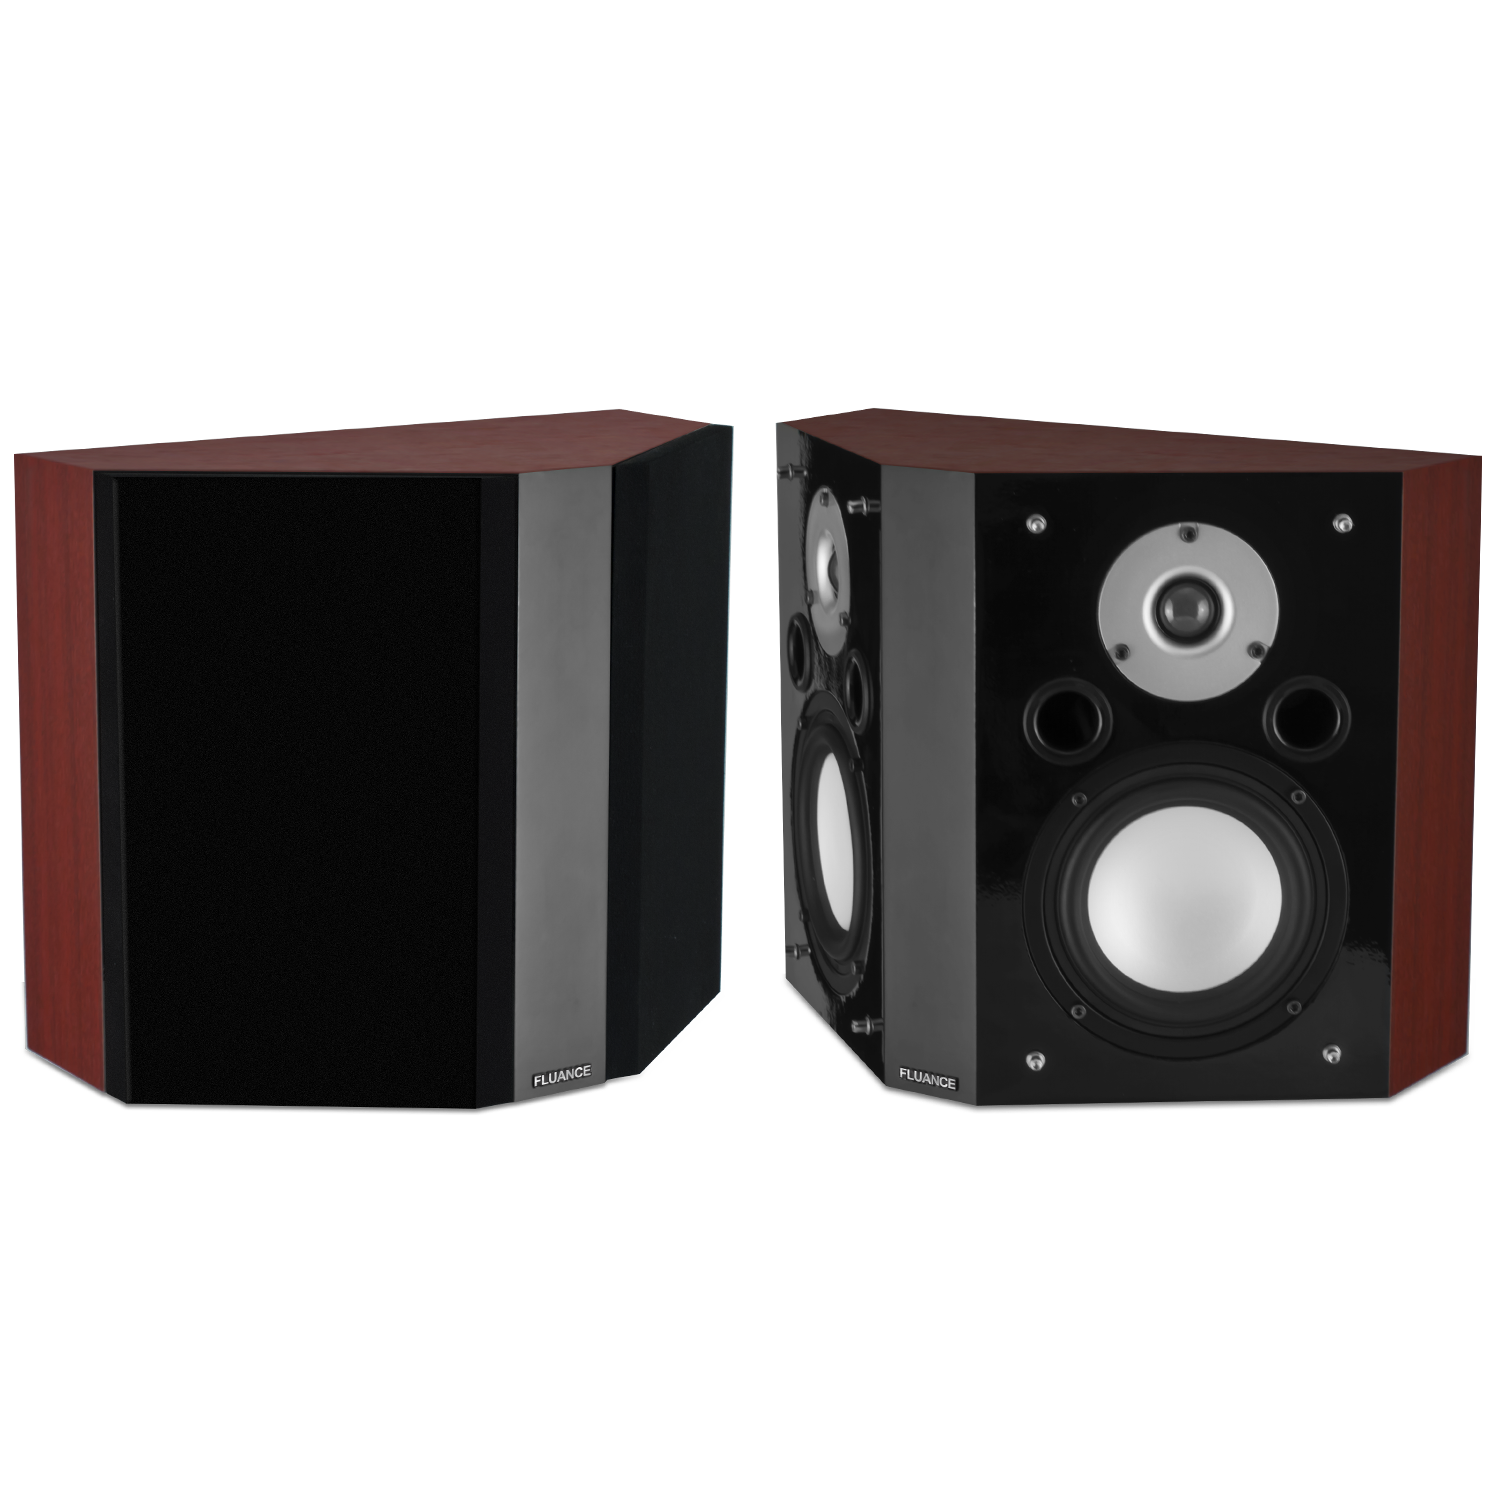 XLBP Wide Dispersion Bipolar Surround Sound Speakers (pair)